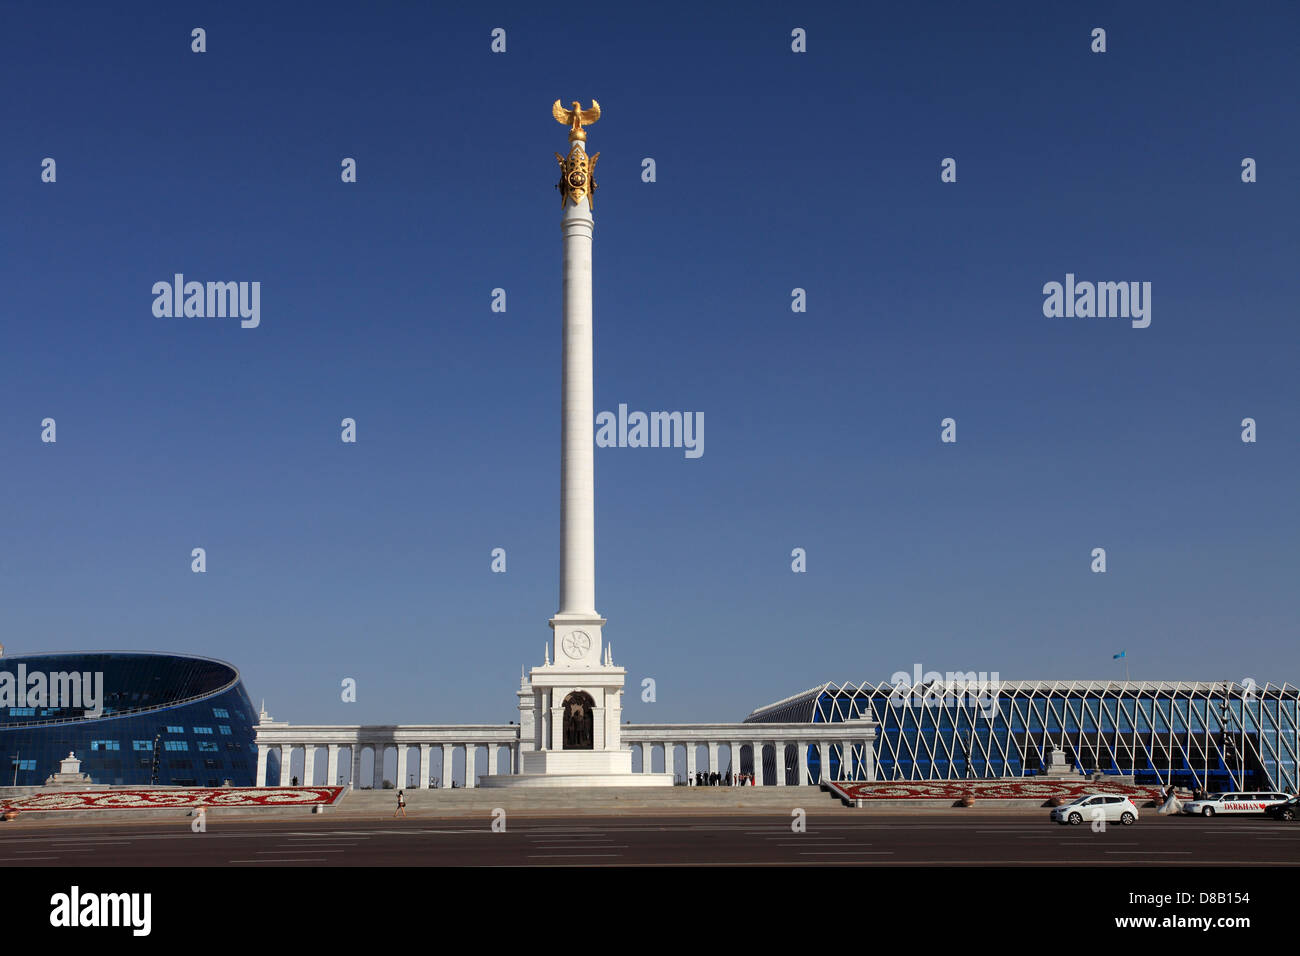 Astana - monument of independence of Kazakhstan - Stock Image